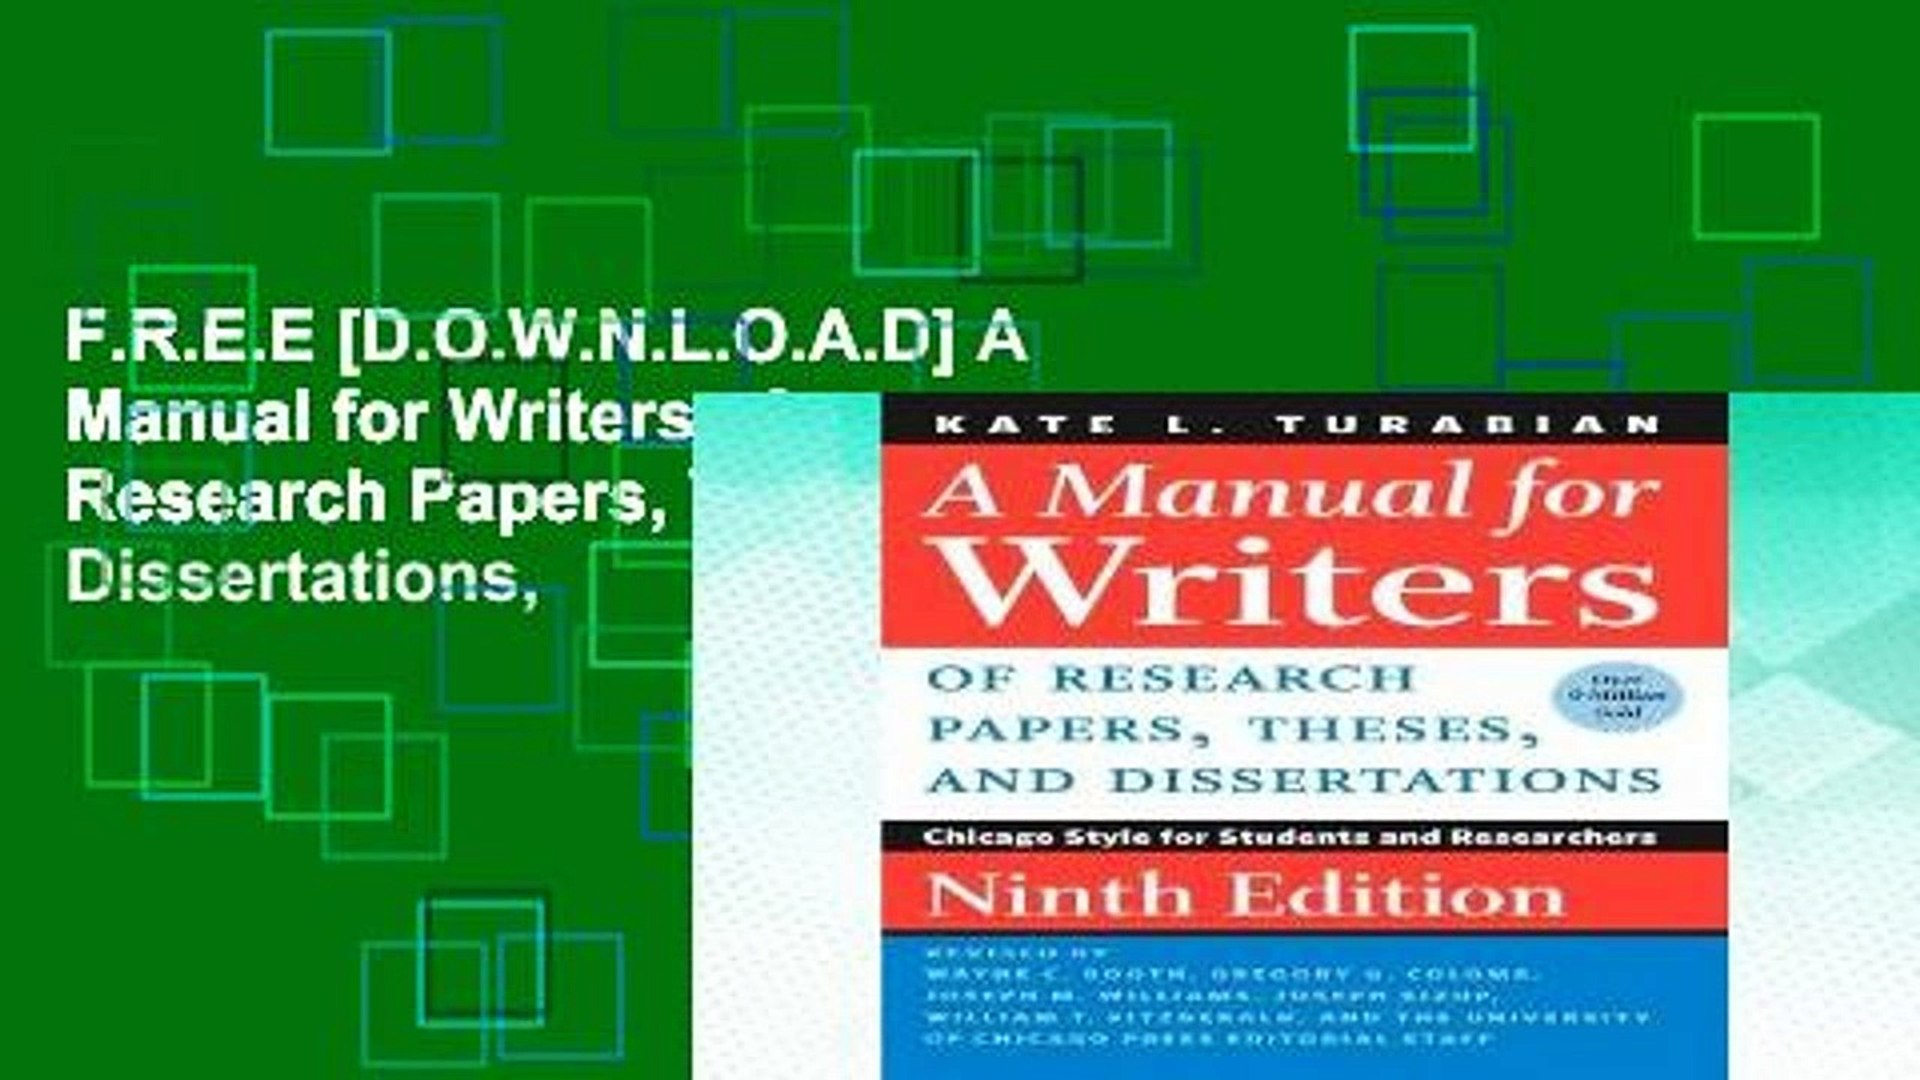 013 X1080 Kcn Research Paper Manual For Writers Of Papers Theses And Magnificent Dissertations A Amazon 9th Edition 8th 13 Full